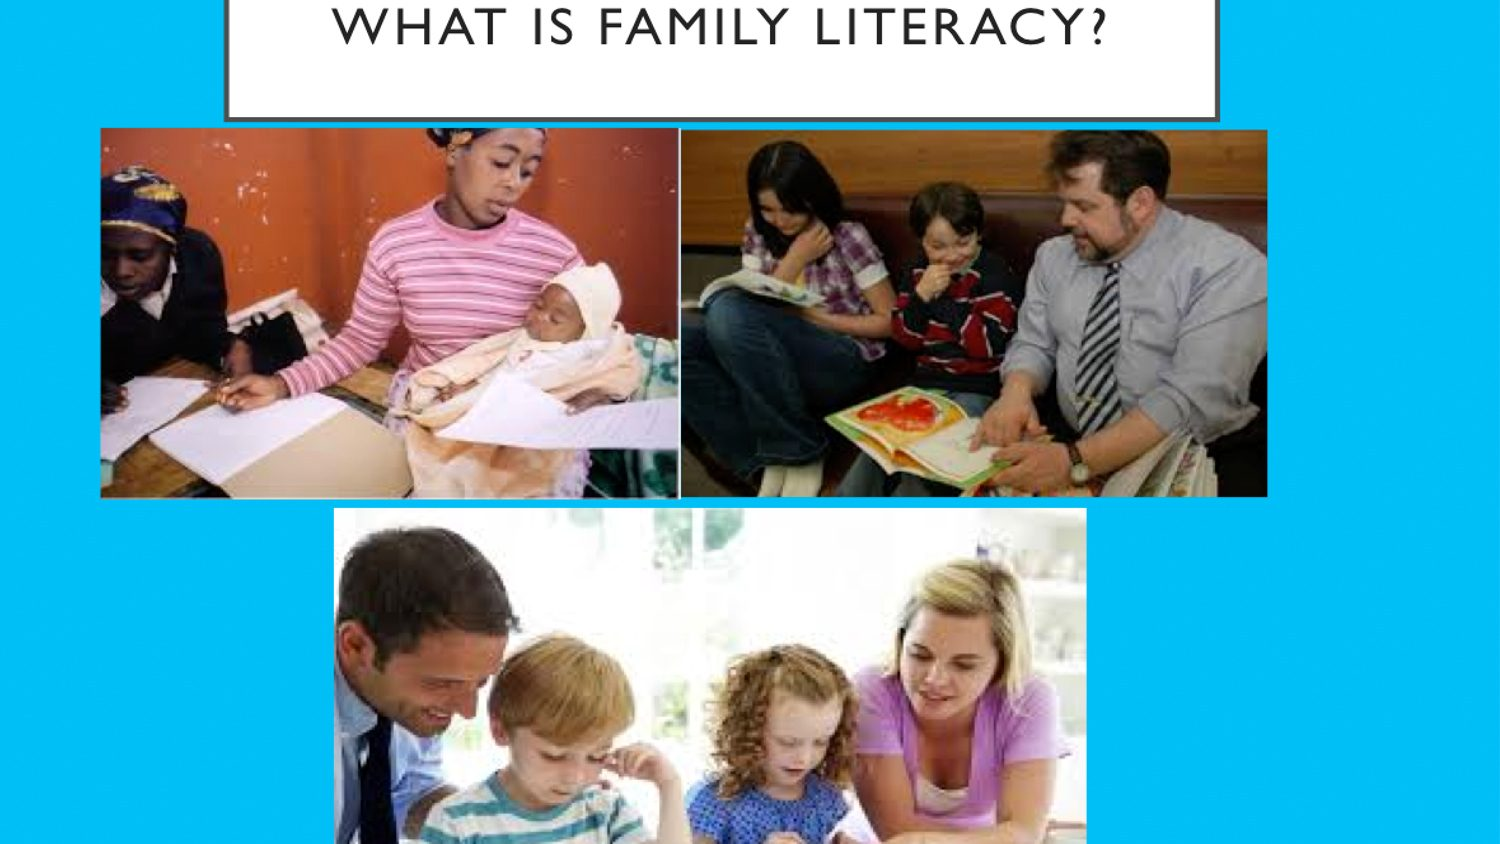 Angela Wiseman, Ph.D. | Reconceptualizing Family Literacy